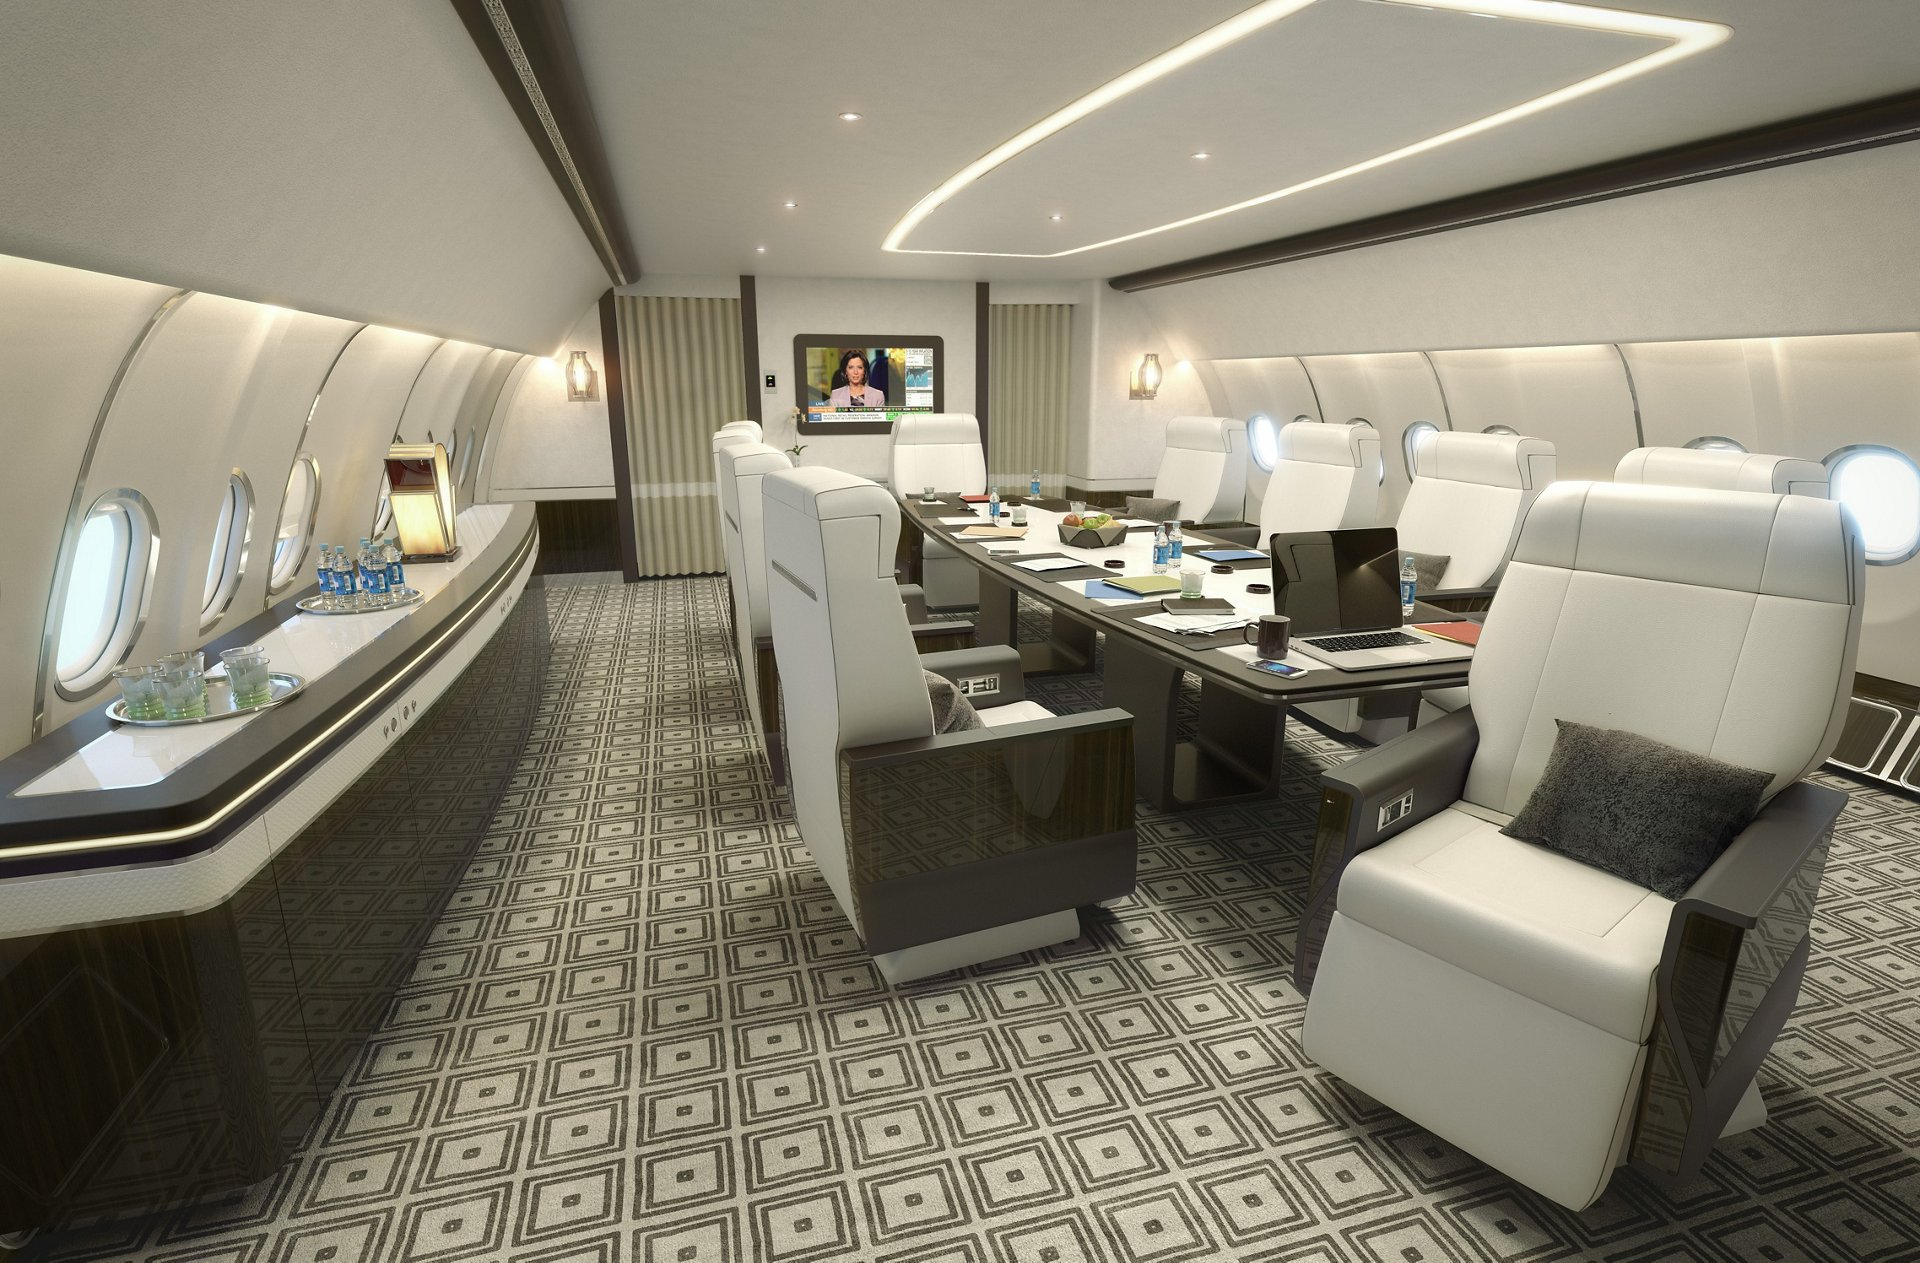 Launched with the ACJ330, the Summit concept features a VIP section – including a bedroom with ensuite bathroom, office, conference and dining room, as well as a working area – in the front of the cabin, with airline-style first-class and economy seating toward the rear